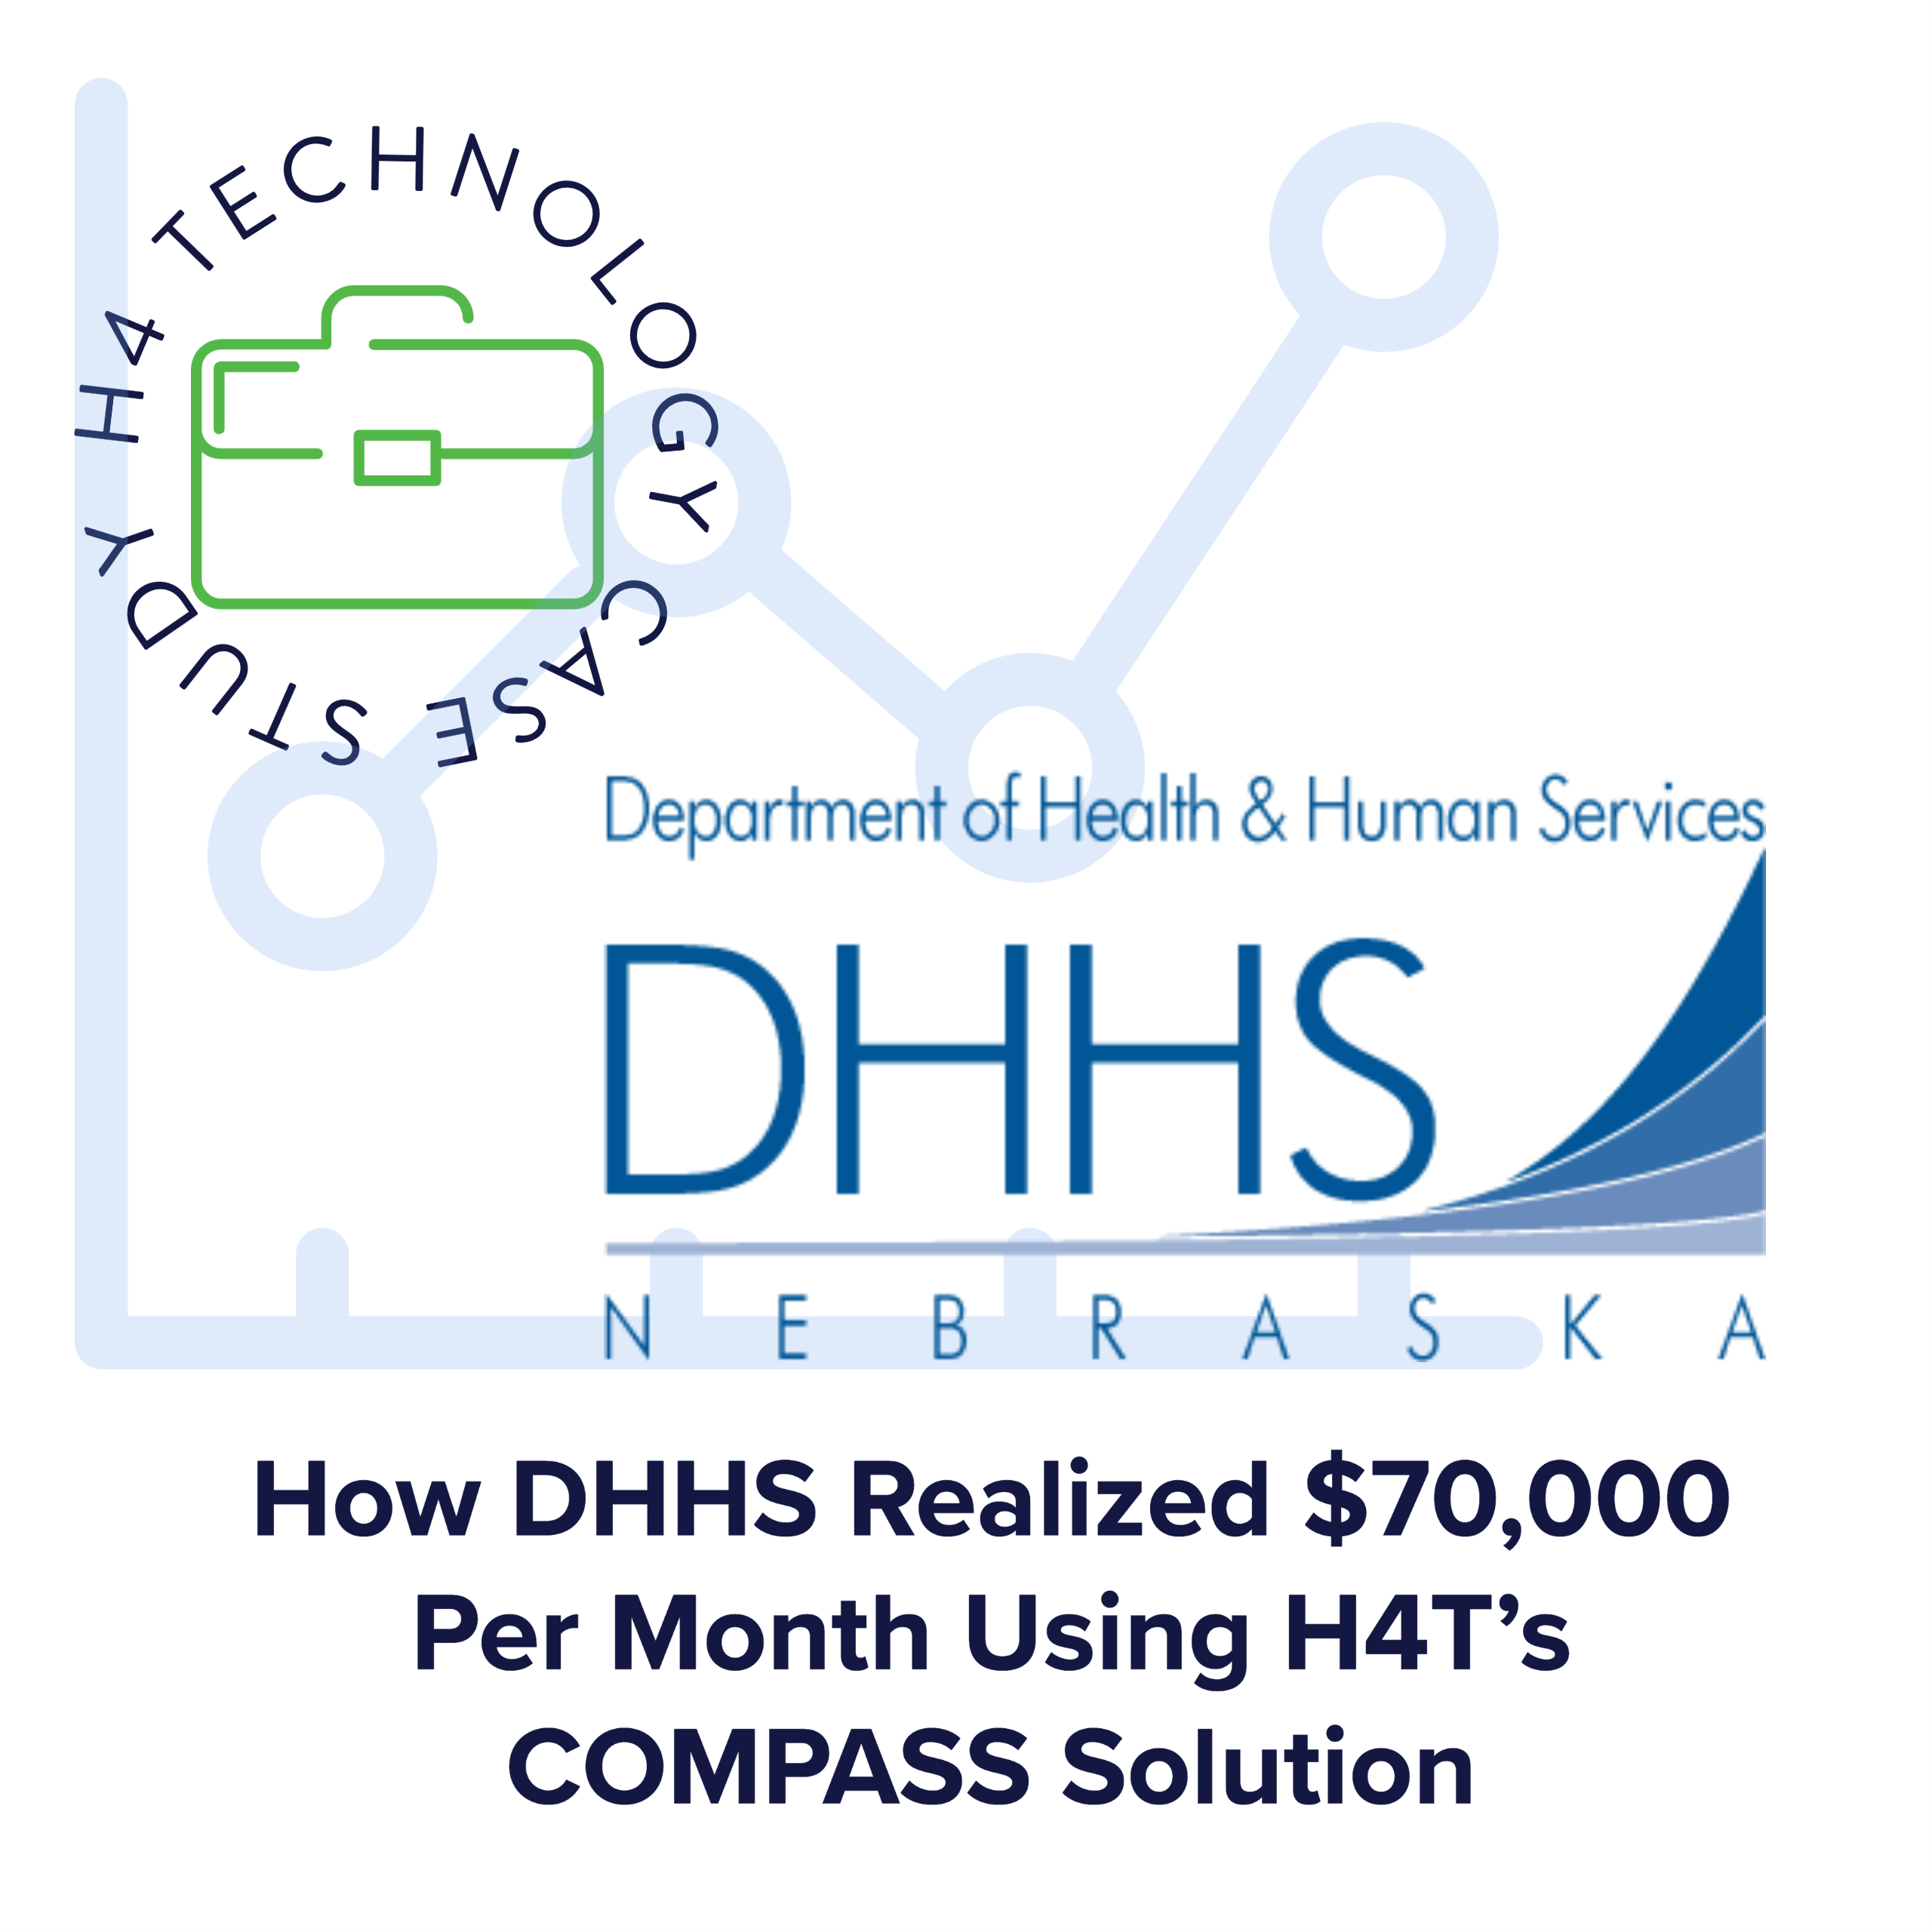 DHHS Case Study image